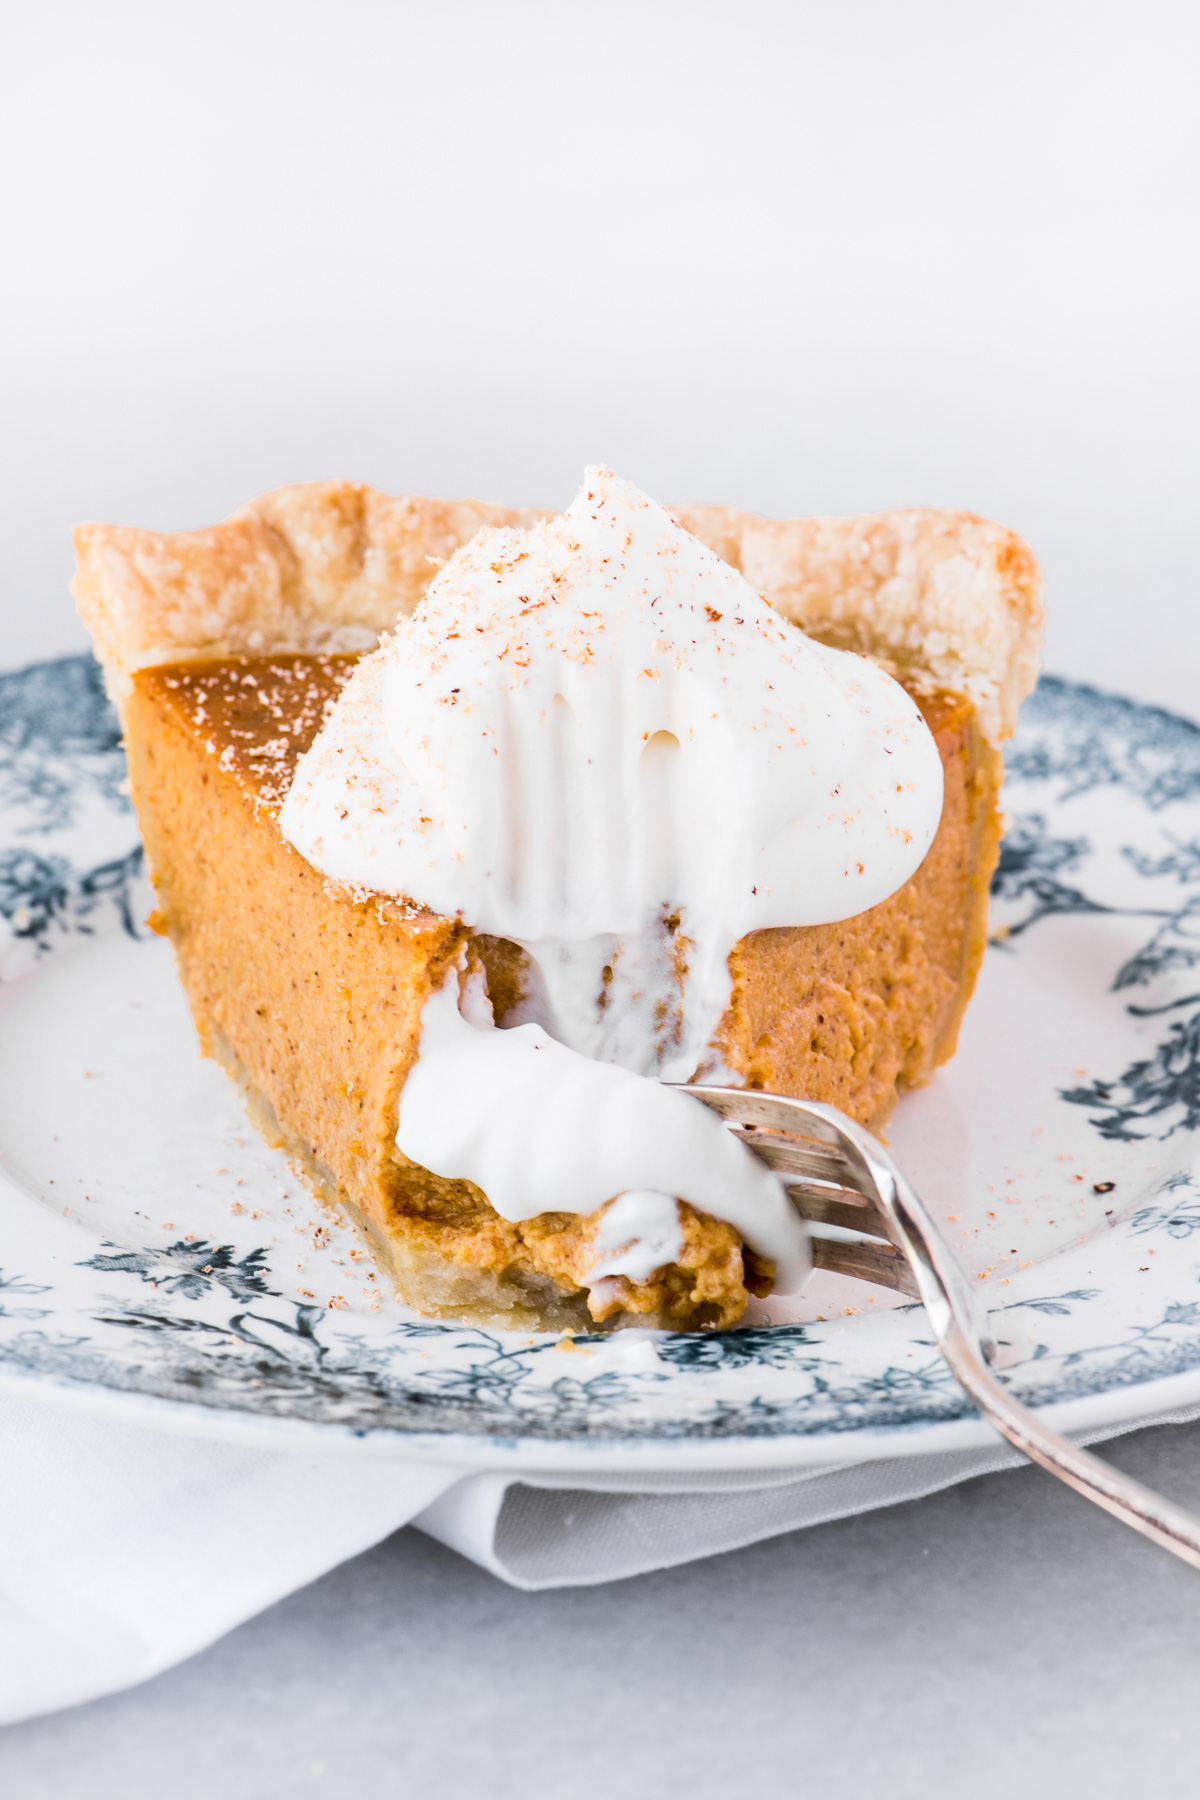 Libby's pumpkin pie recipe with maple whipped cream